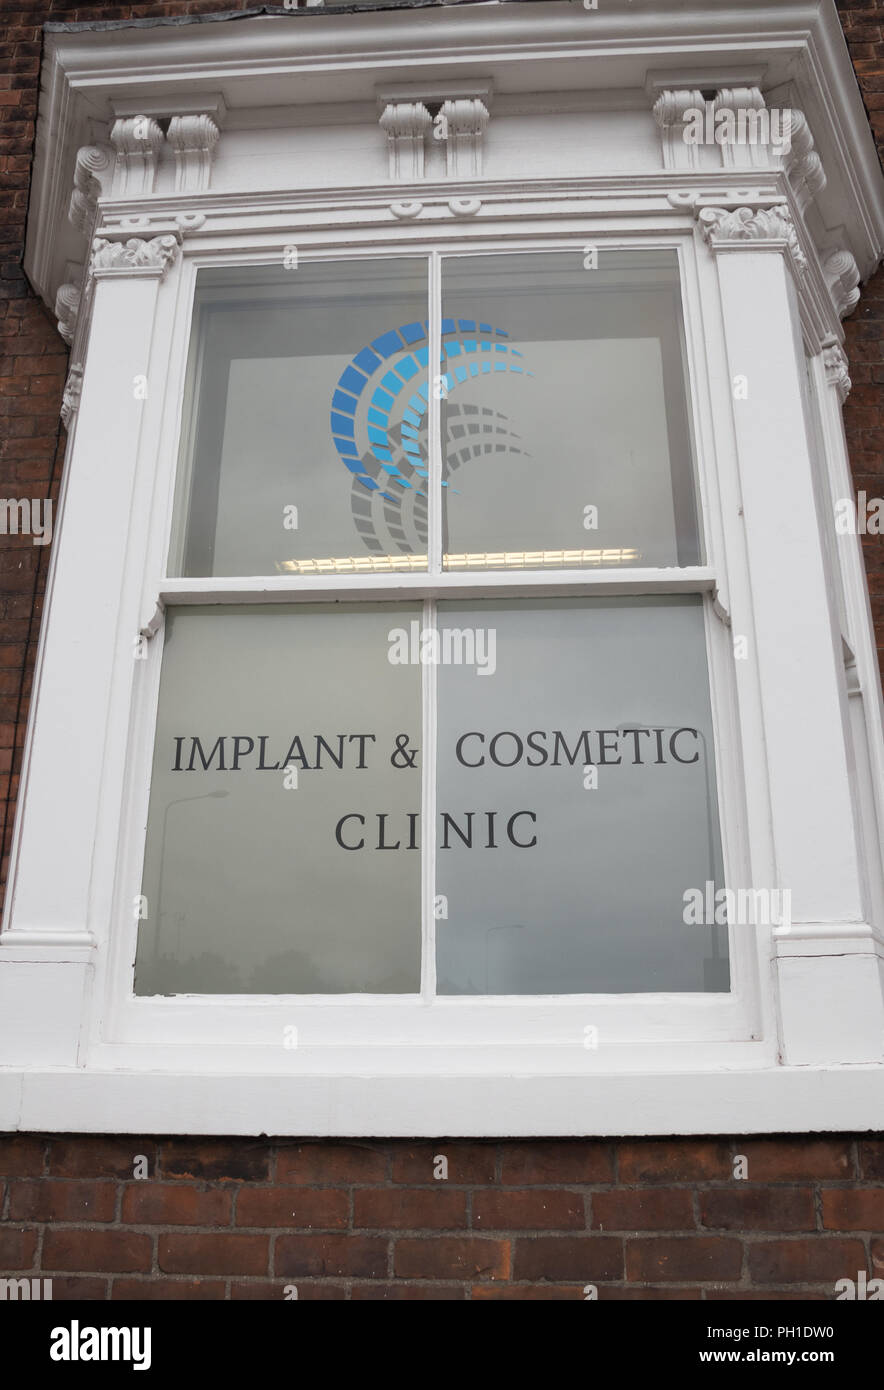 Implant & Cosmetic Clinic in Beverley, East Yorkshire - Stock Image